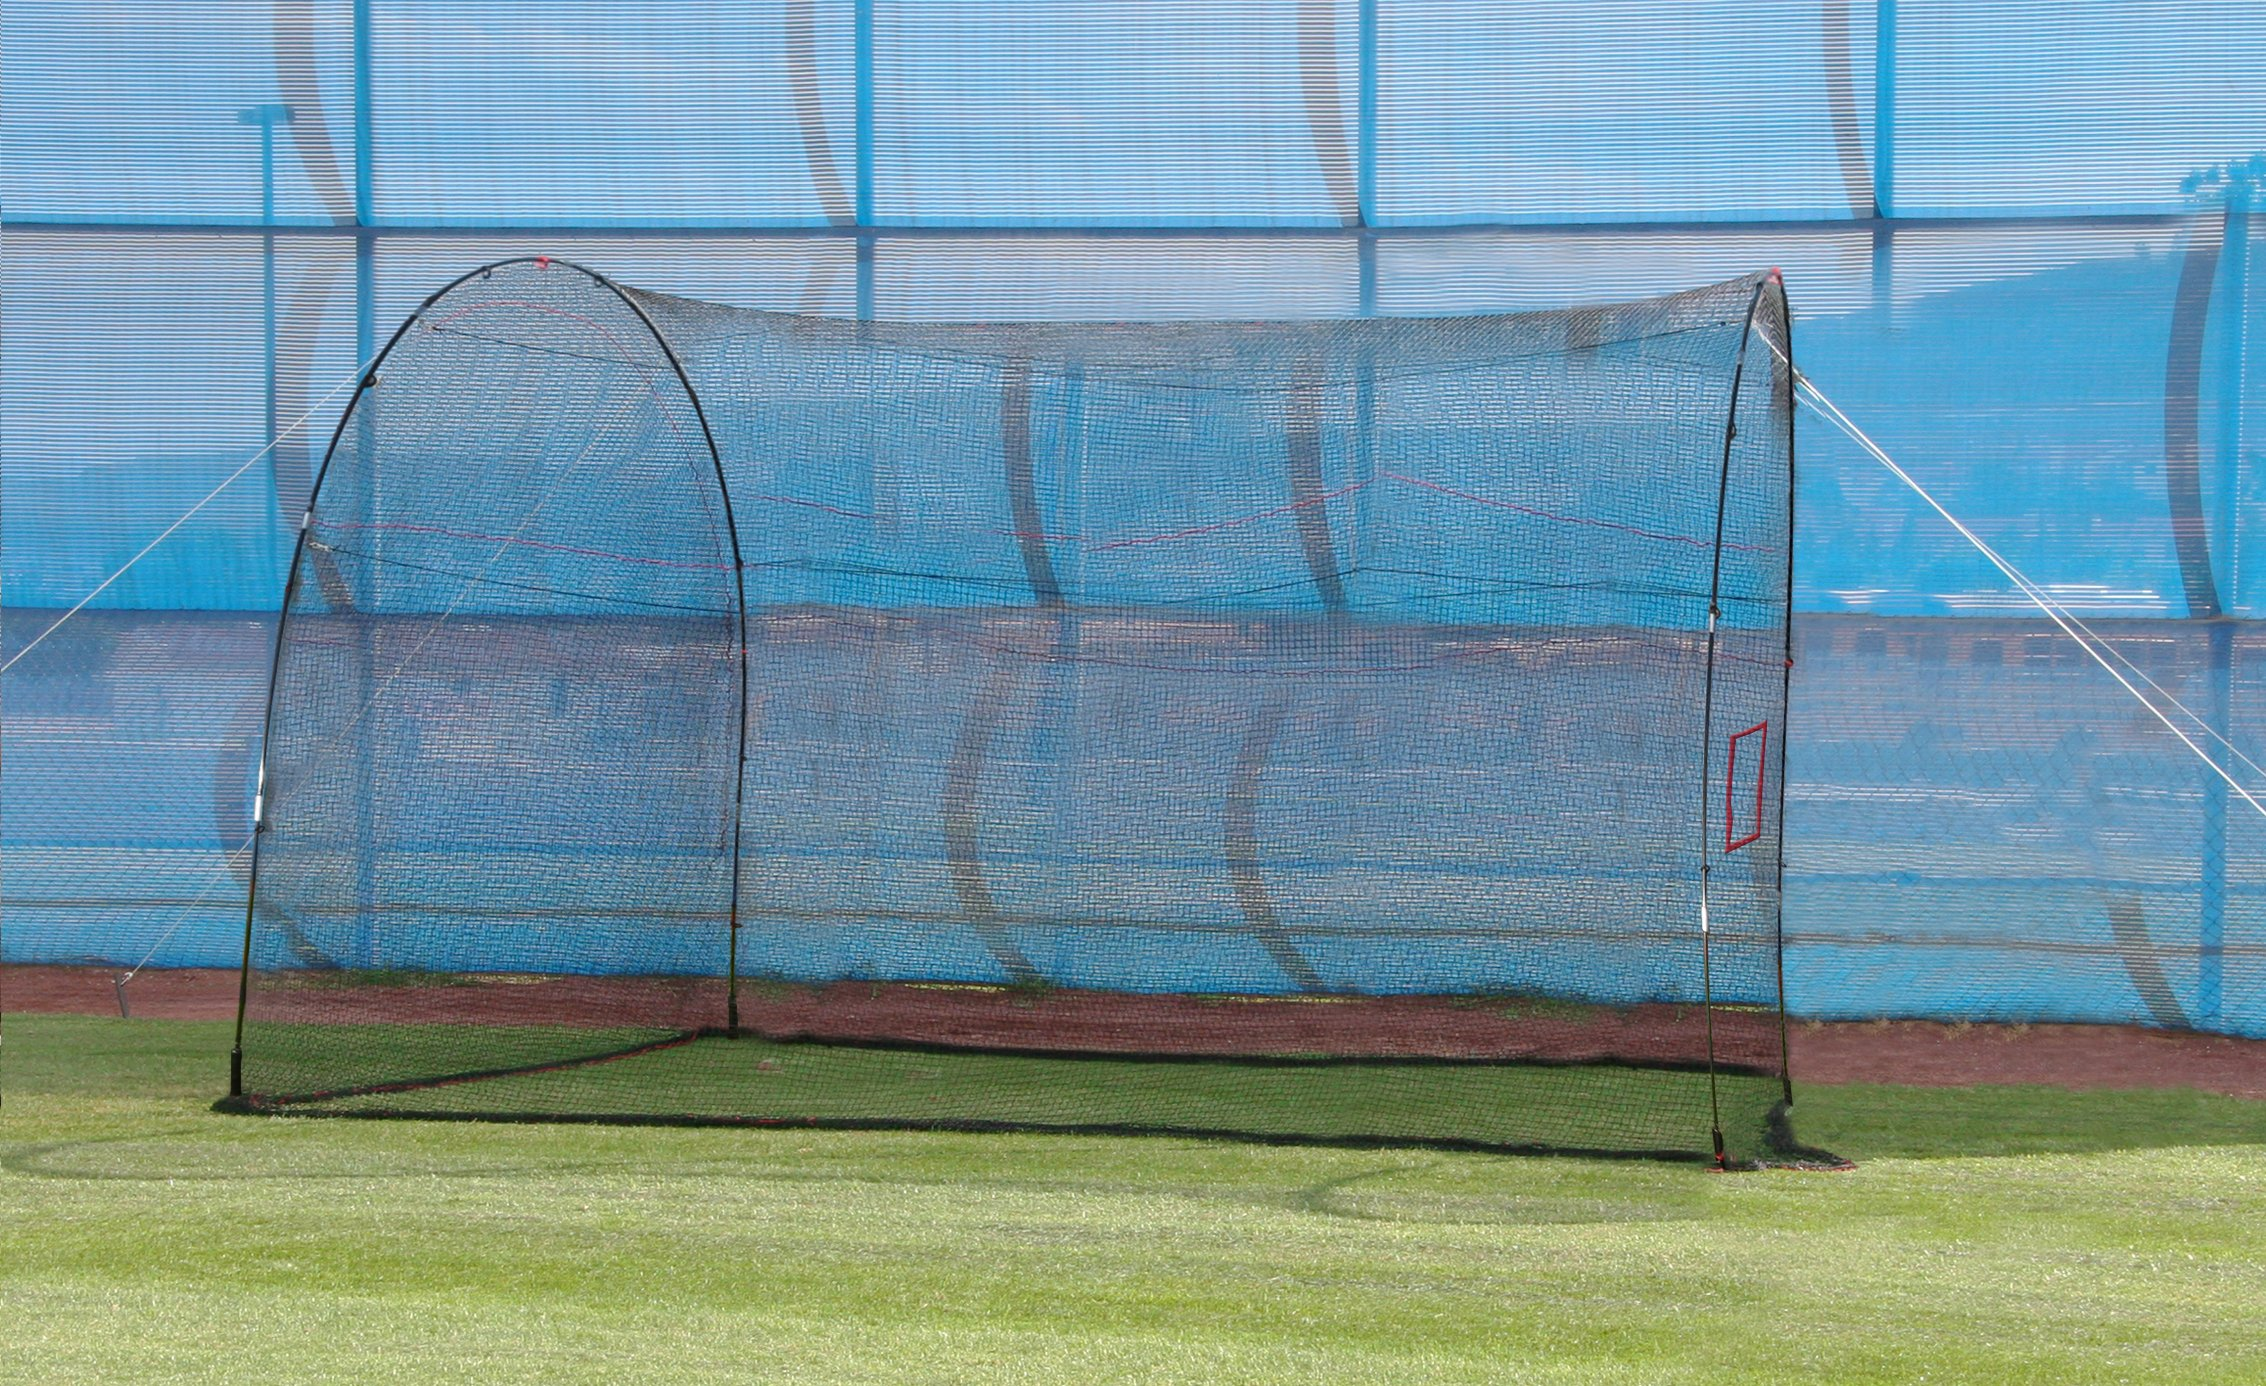 HEATER SPORTS HomeRun Baseball and Softball Batting Cage Net and Frame, With Built In Pitching Machine Square (Machine NOT Included) Home Run Batting Cage by Heater Sports